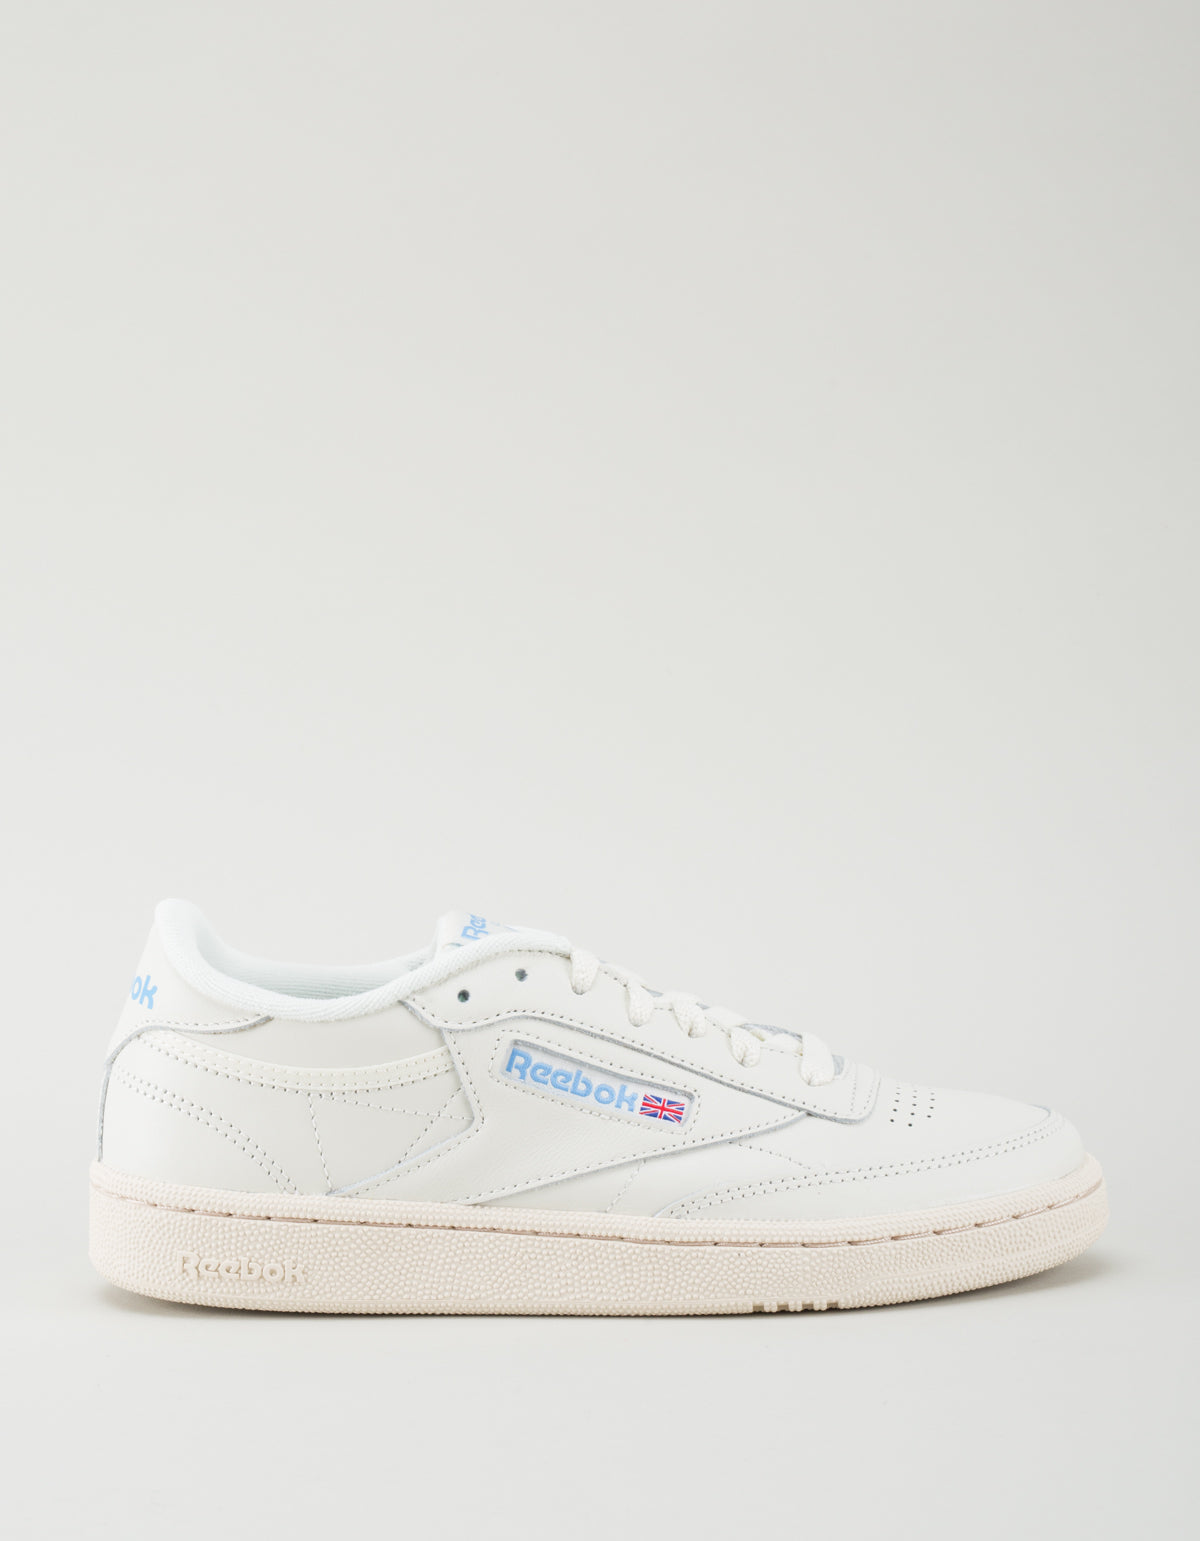 230899a3b74 Reebok Men s Club C 85 Vintage Classic White